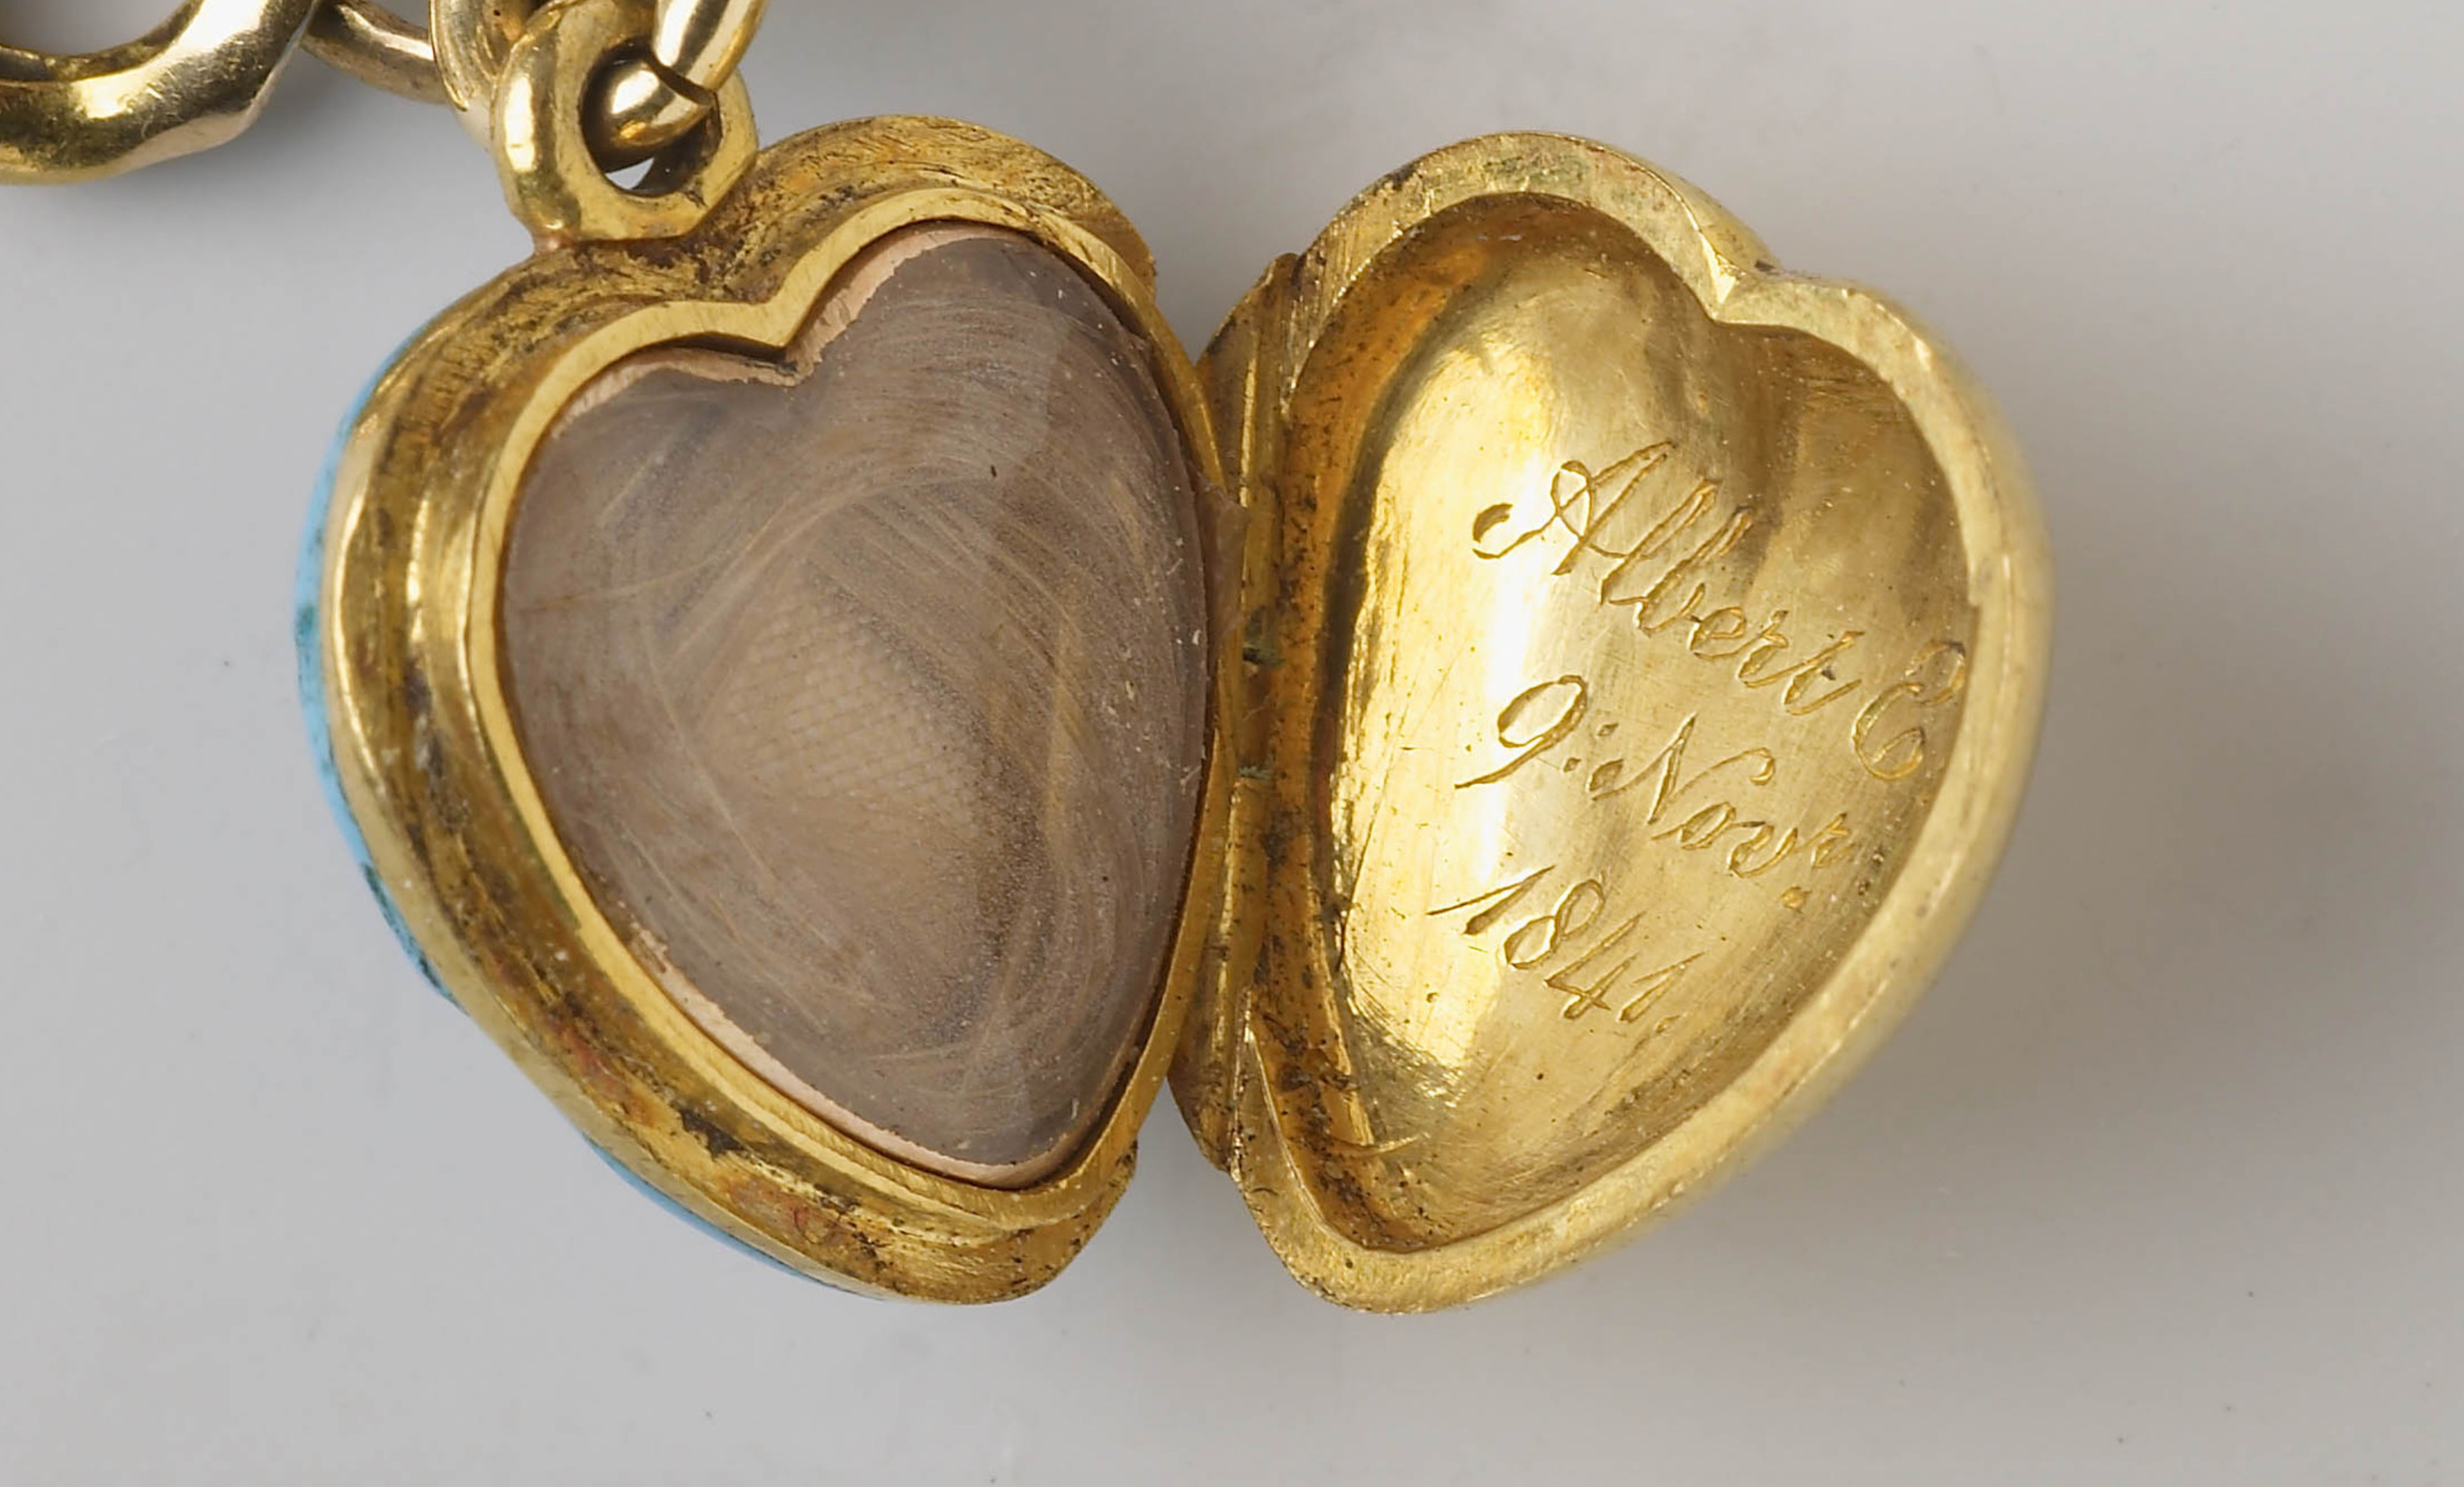 interior of one of the lockets on Queen Victoria's bracelet